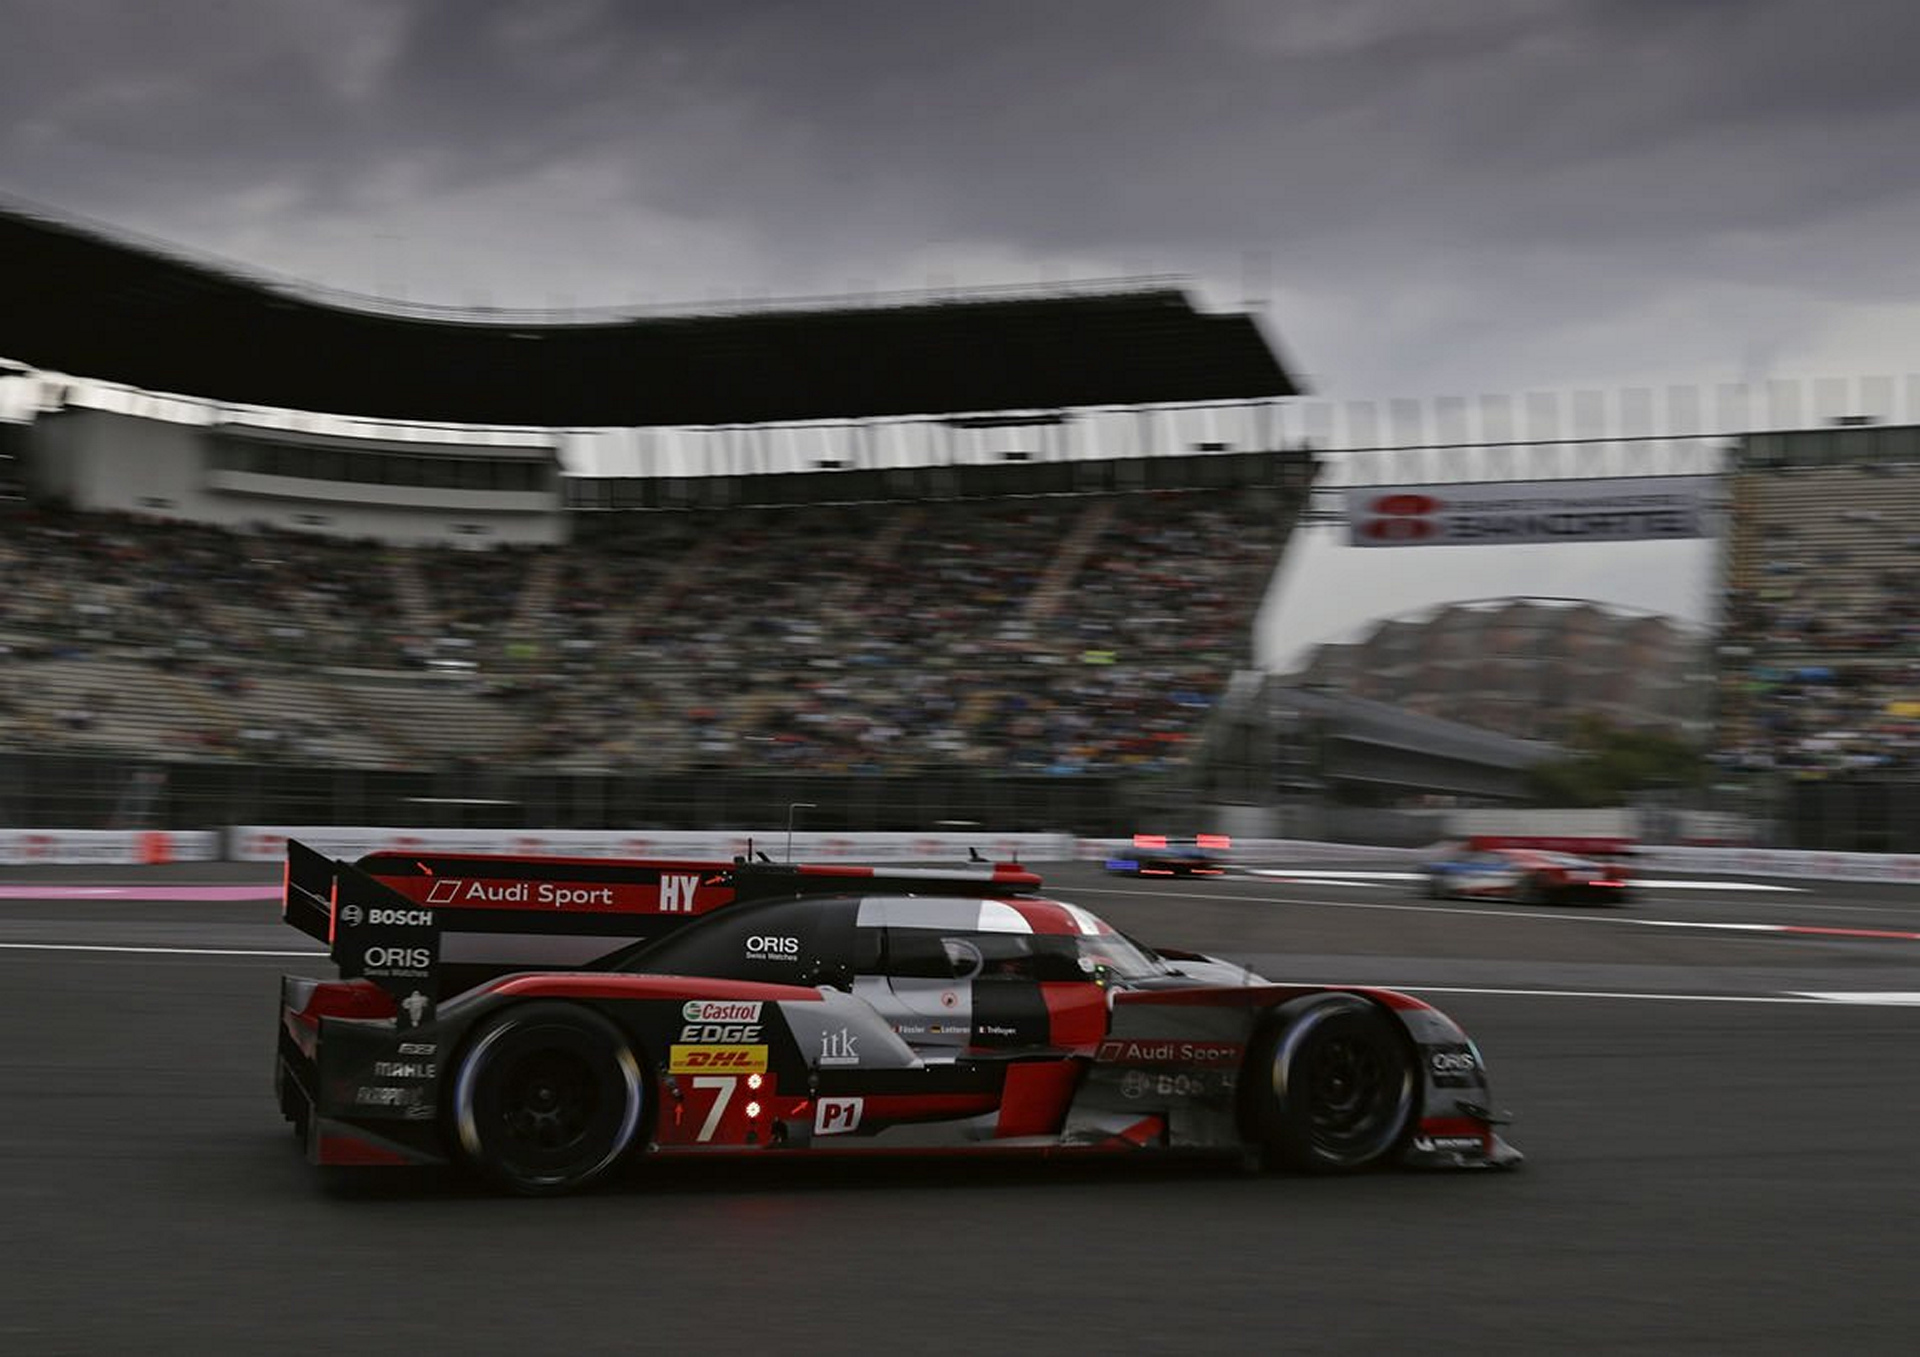 Audi Second In Turbulent Race In Mexico Carrrs Auto Portal - Audi mexico